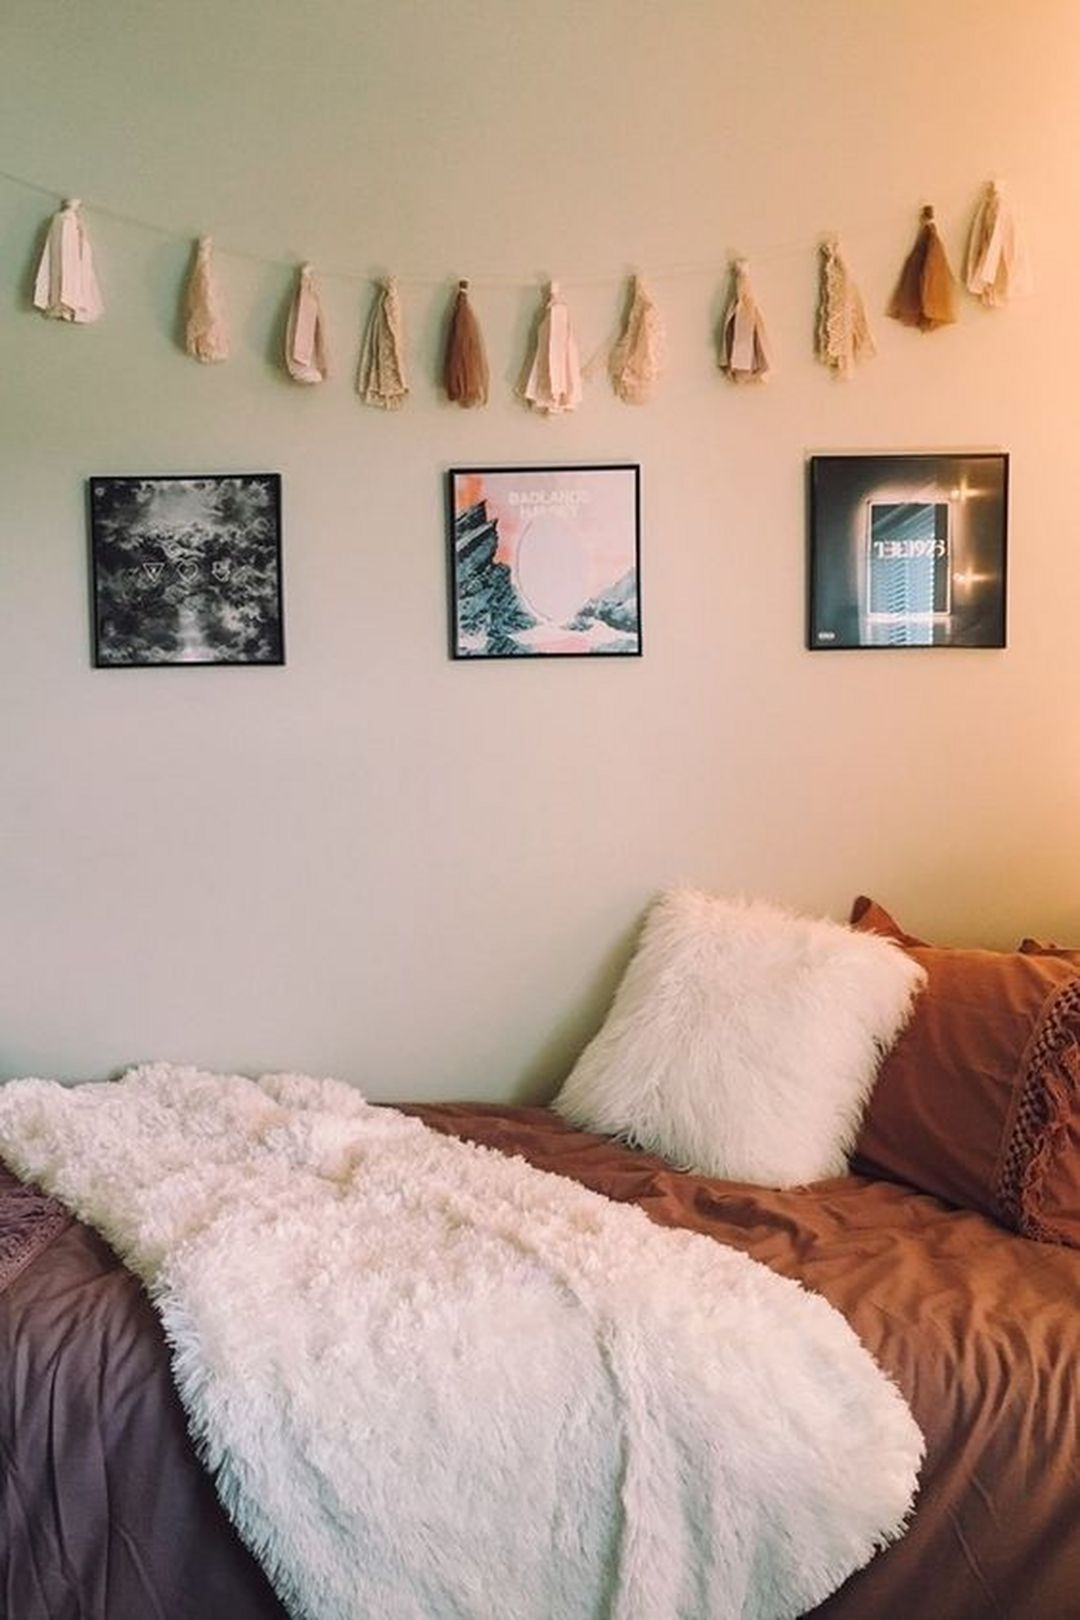 28+ Awesome And Simple Bedroom Wall Decorating Ideas On A Budget